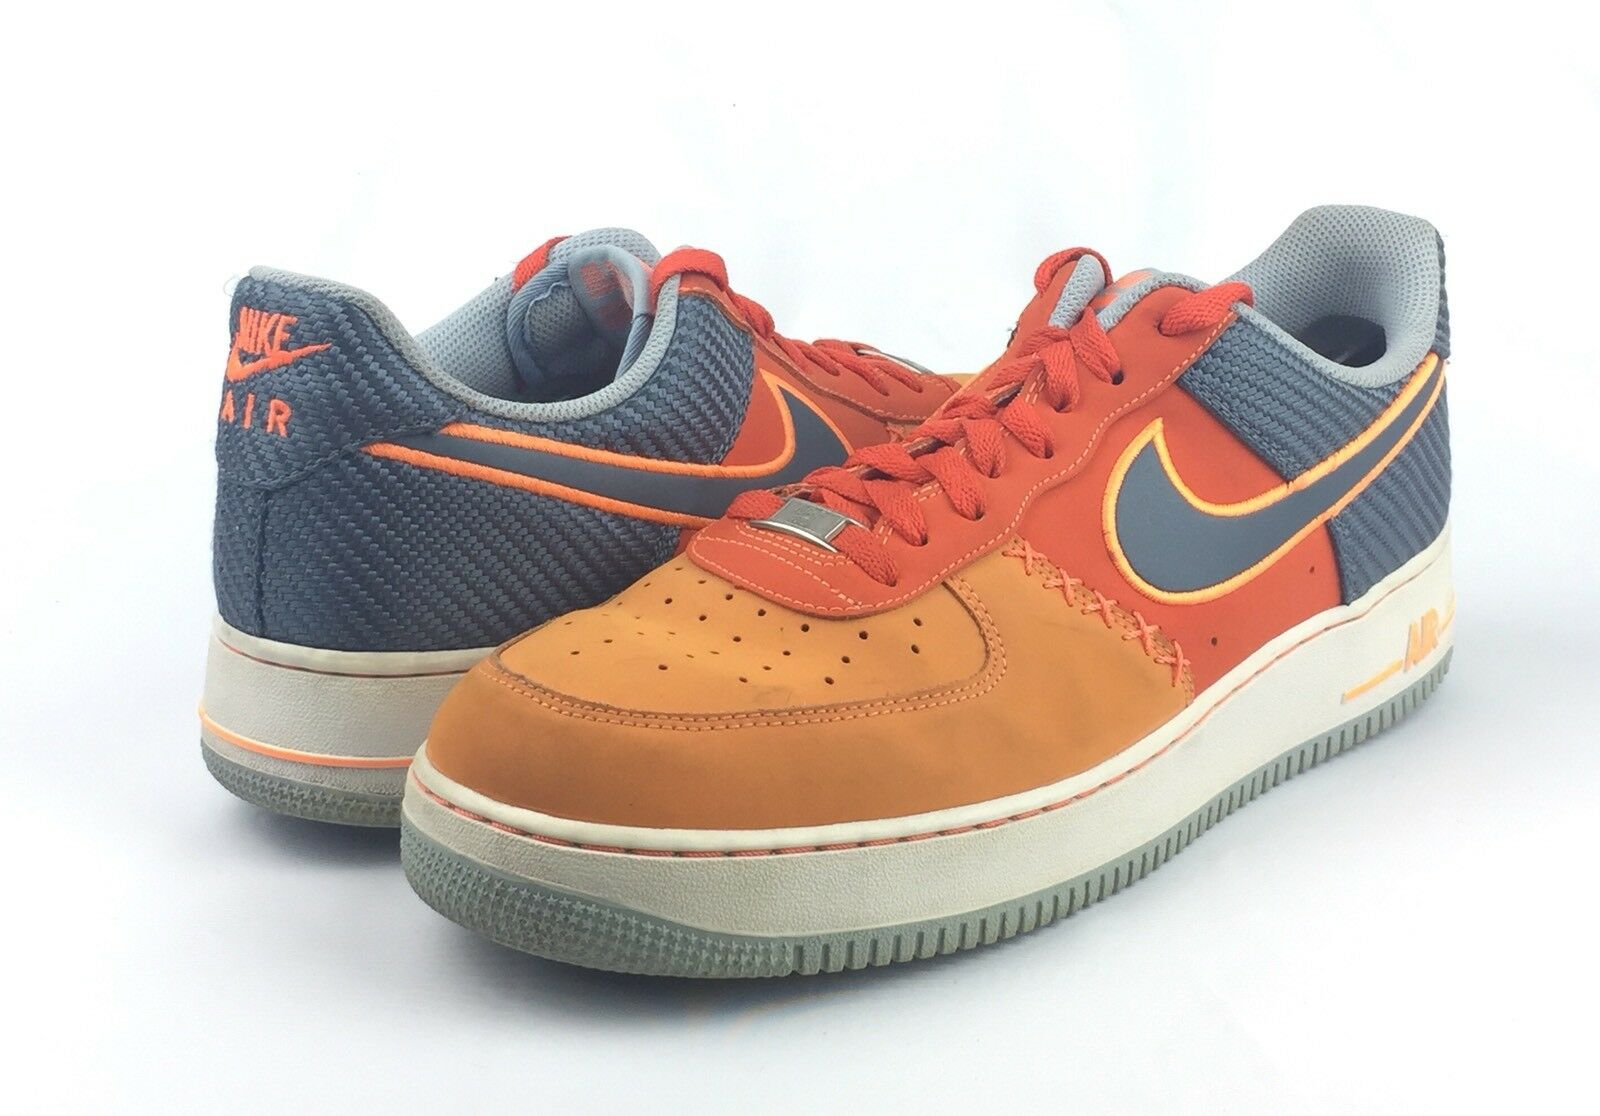 Nike Air Force 1 AF-1 '82 Men's Orange Low Top Basketball Shoes Comfortable The most popular shoes for men and women